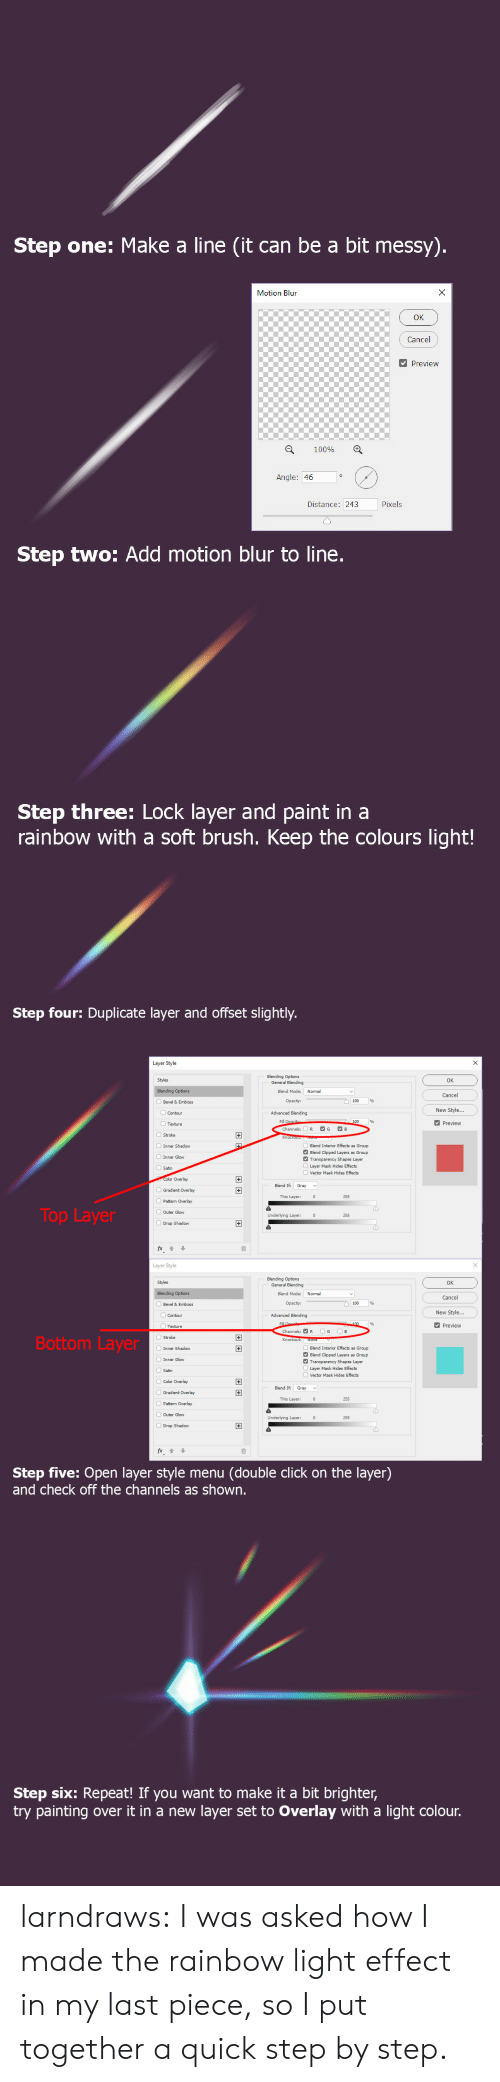 fx: Step one: Make a line (it can be a bit messy).  X  Motion Blun  Cancel  Preview  100%  Angle: 46  Pixels  Distance: 243  Step two: Add motion blur to line.  Step three: Lock layer and paint in a  rainbow with a soft brush. Keep the colours light!   Step four: Duplicate layer and offset slightly.  Layer Style  Blending Options  General Blending  Styles  OK  Blending Options  Blend Mode:  Normal  Cancel  Opacity:  Bevel & Emboss  New Style...  Advanced Blending  Contour  Fill Opacib  Channels:  Preview  Texture  G  B  R  +  Stroke  Inner Shadow  Blend Interior Effects  Blend Clipped Layers  Transparency Shapes Layer  s Group  Group  Inner Glow  Layer Mask Hides Effects  Satin  Vector Mask Hides Effects  Color Overlay  +  Blend If  Gray  Gradient Overlay  This Layer:  255  Pattern Overlay  Top Layer  OOuter Glow  Underlying Layer:  255  Drop Shadow  Layer Style  Blending Options  General Blending  Styles  OK  Normal  Blending Options  Blend Mode:  Cancel  Opacity:  Bevel & Emboss  New Style...  Advanced Blending  Contour  Fill  100  Preview  Texture  G  B  Channels: R  Bottom Layer  Knockout: None  Inner Shadow  Blend Interior Effects  Blend Clipped Layers  Transparency Shapes Layer  Layer Mask Hides Effects  +  s Group  Group  Inner Glow  Satin  Vector Mask Hides Effects  Color Overlay  +  Blend If  Gradient Overlay  +  This Layer:  255  Pattern Overlay  Outer Glow  Underlying Layer:  255  Drop Shadow  fx  Step five: Open layer style menu  and check off the channels as shown.  (double click on the layer)   Step six: Repeat! If you want to make it a bit brighter,  try painting  layer set to Overlay with a light colour.  over it in a new larndraws:  I was asked how I made the rainbow light effect in my last piece, so I put together a quick step by step.